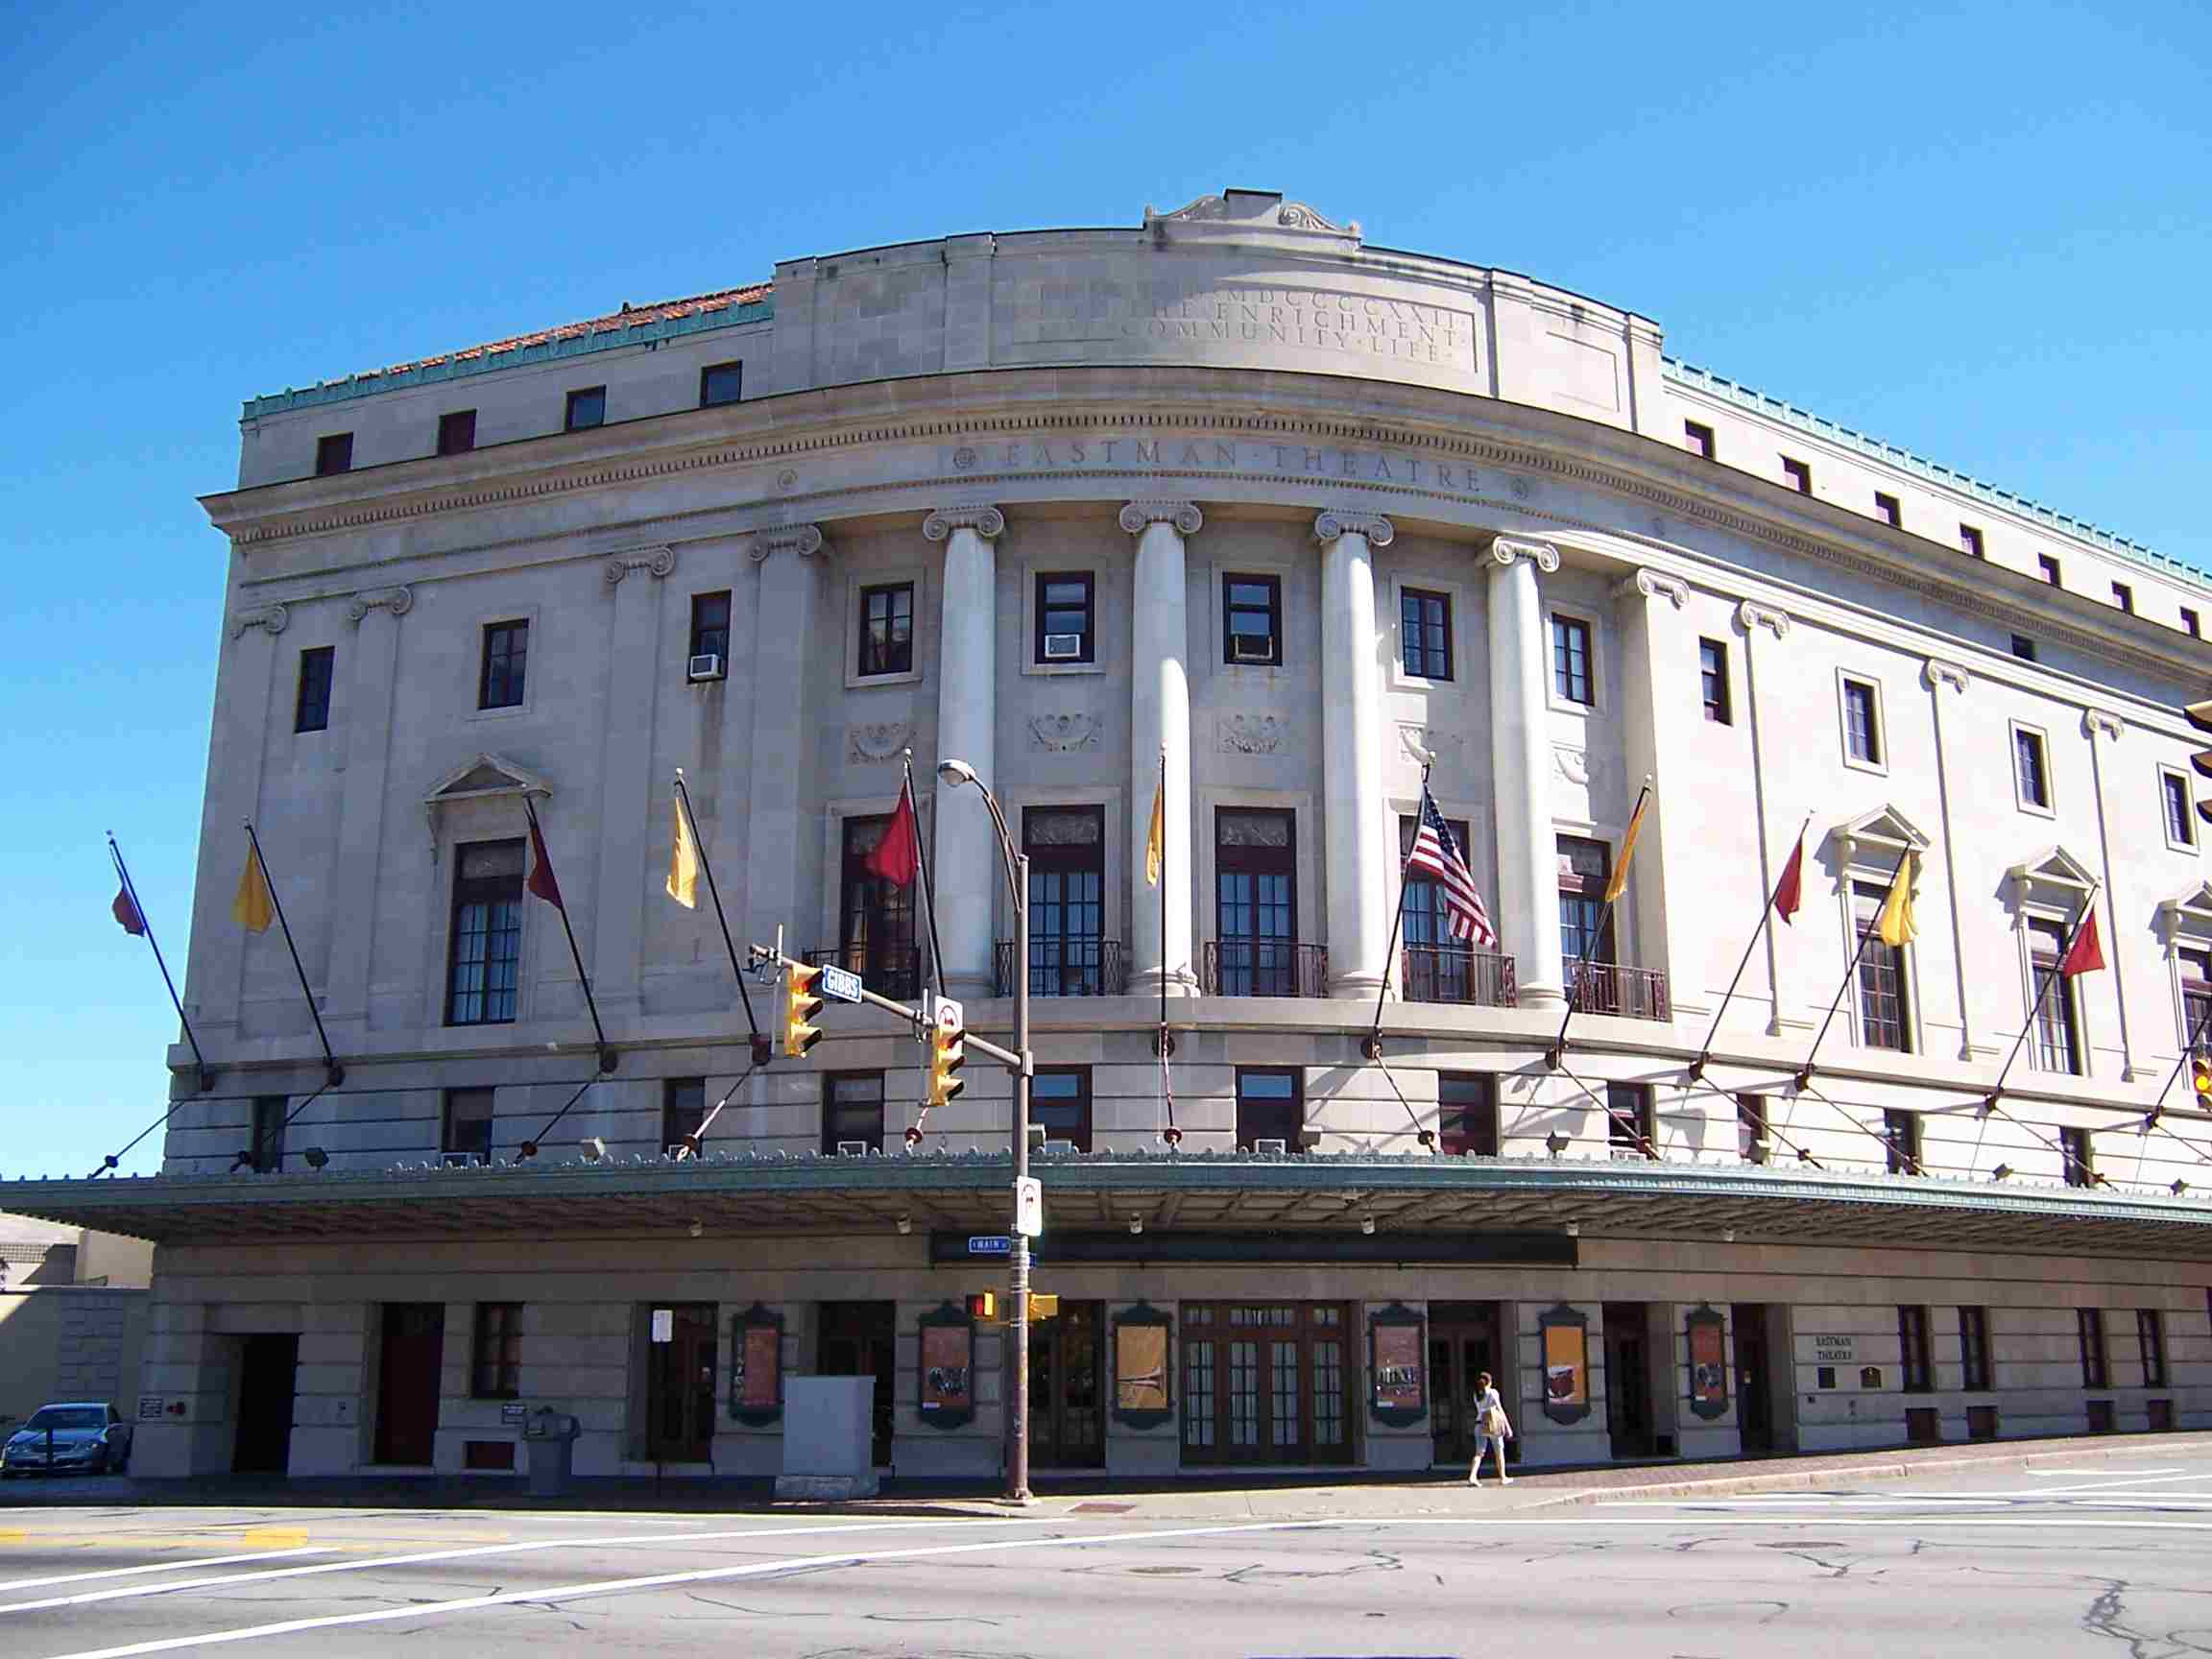 Eastman Theatre, an historic auditorium in Rochester, New York